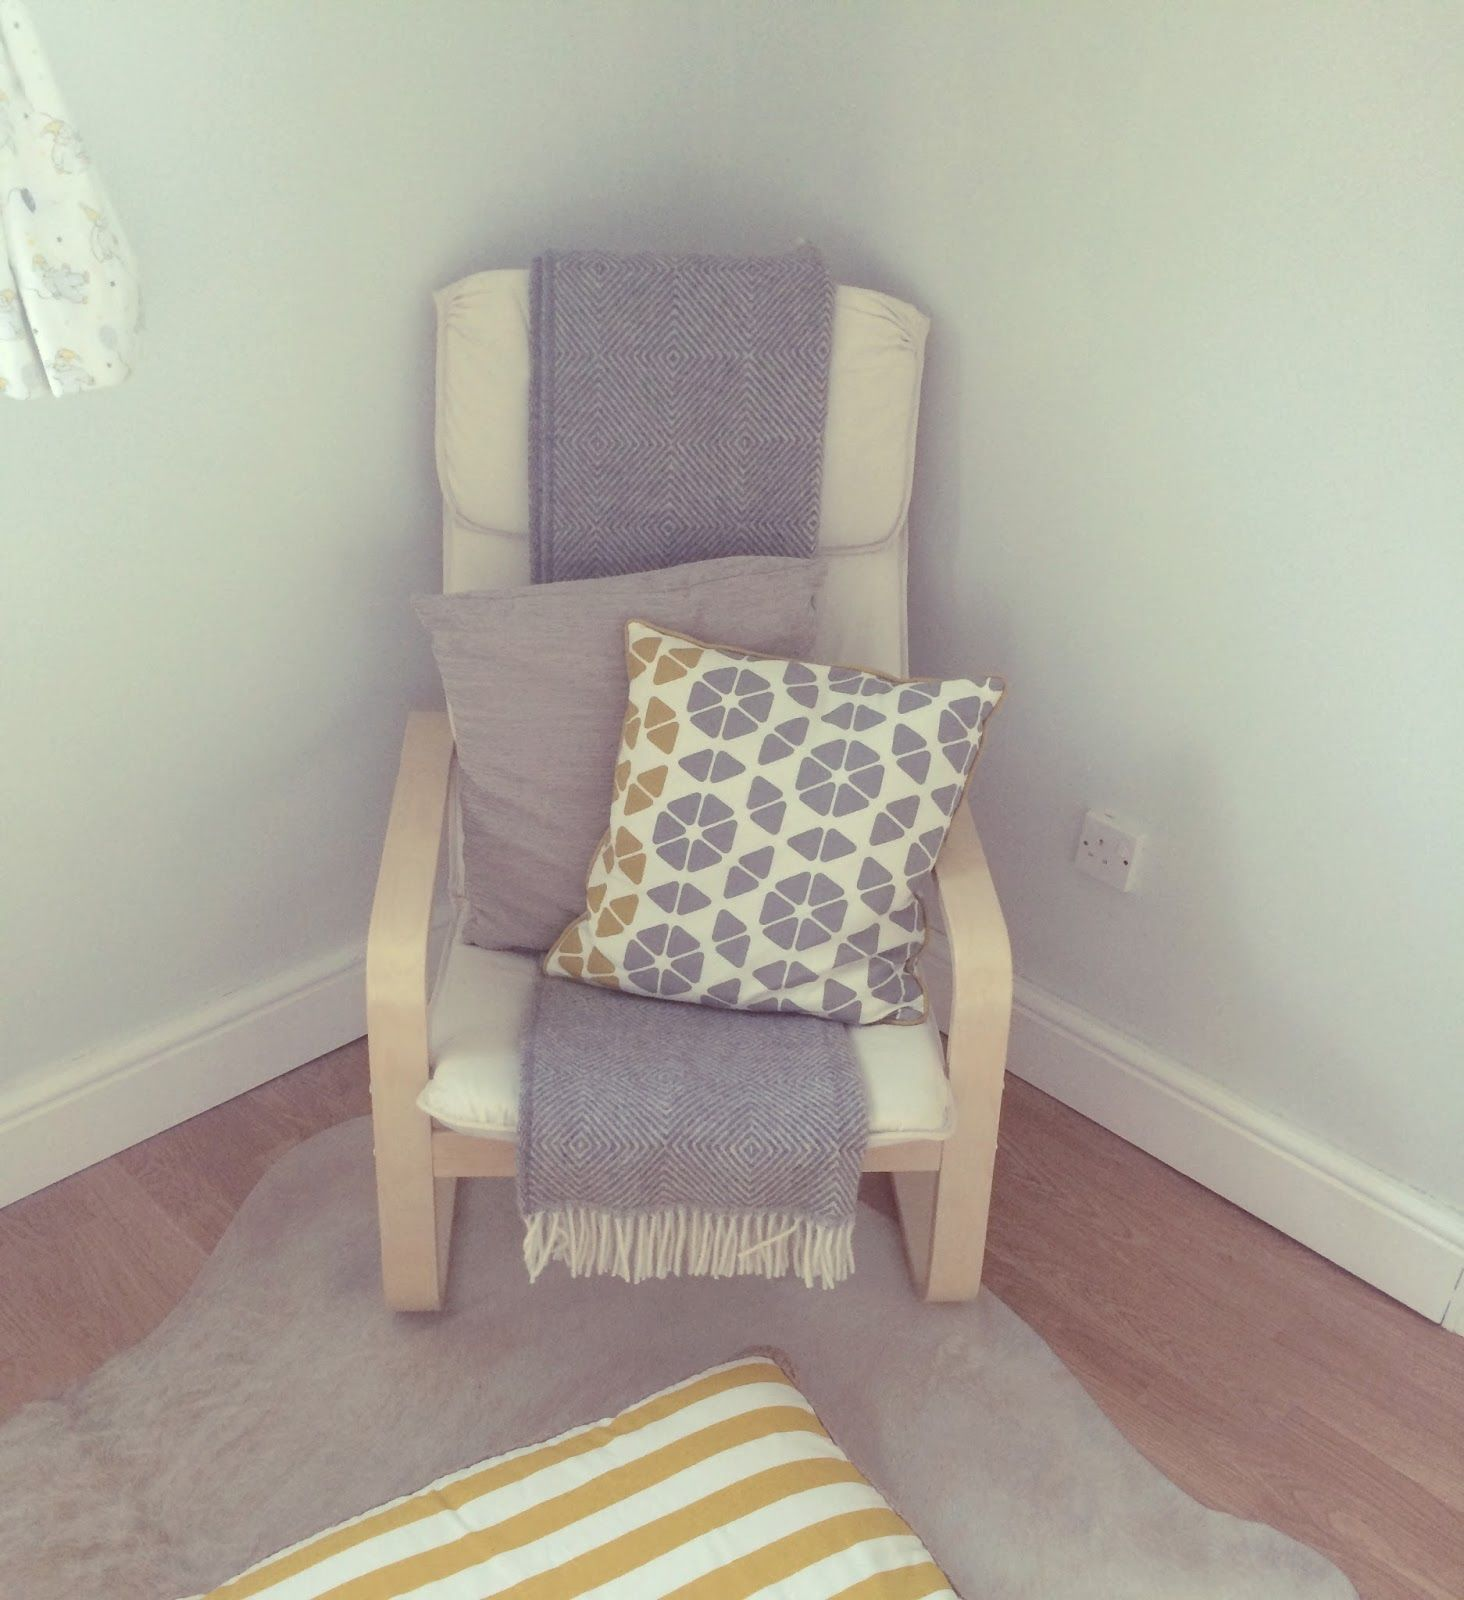 Ikea\u0027s PELLO chair is ideal for a nursery. It has great bounce and ...